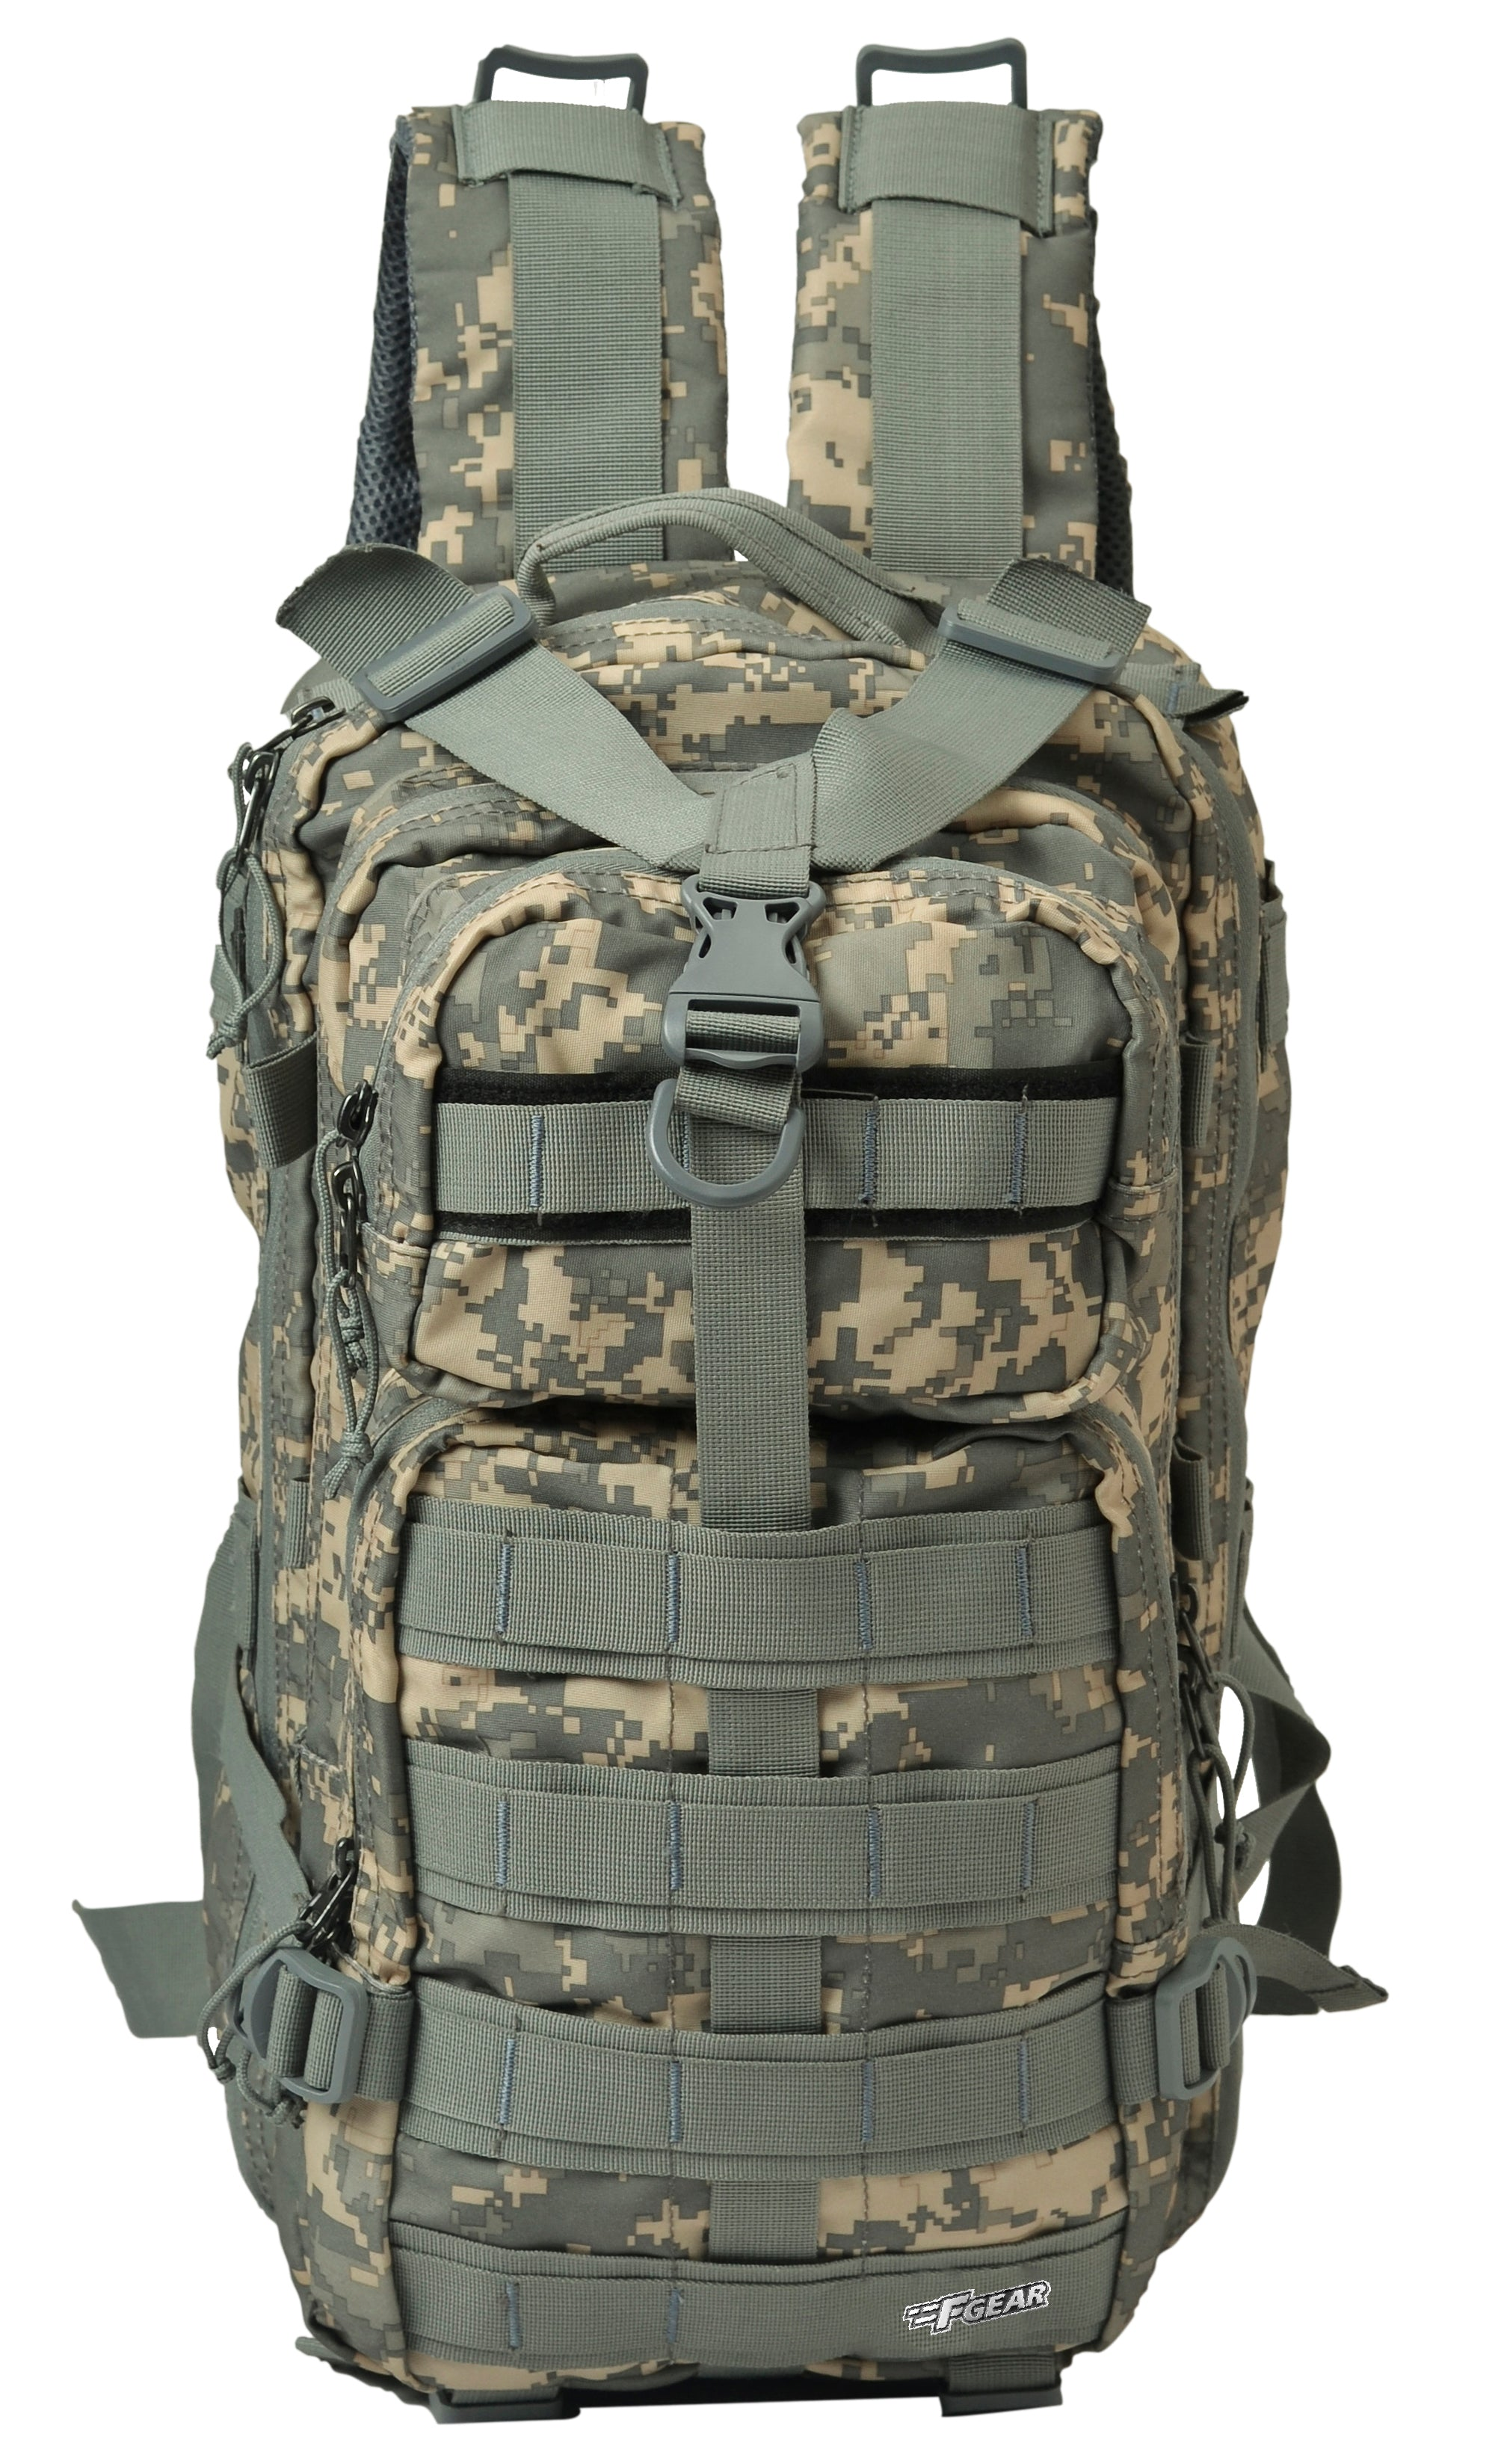 F Gear Military Tactical 29 Liter Backpack (Marpat ACV Digital Camo)